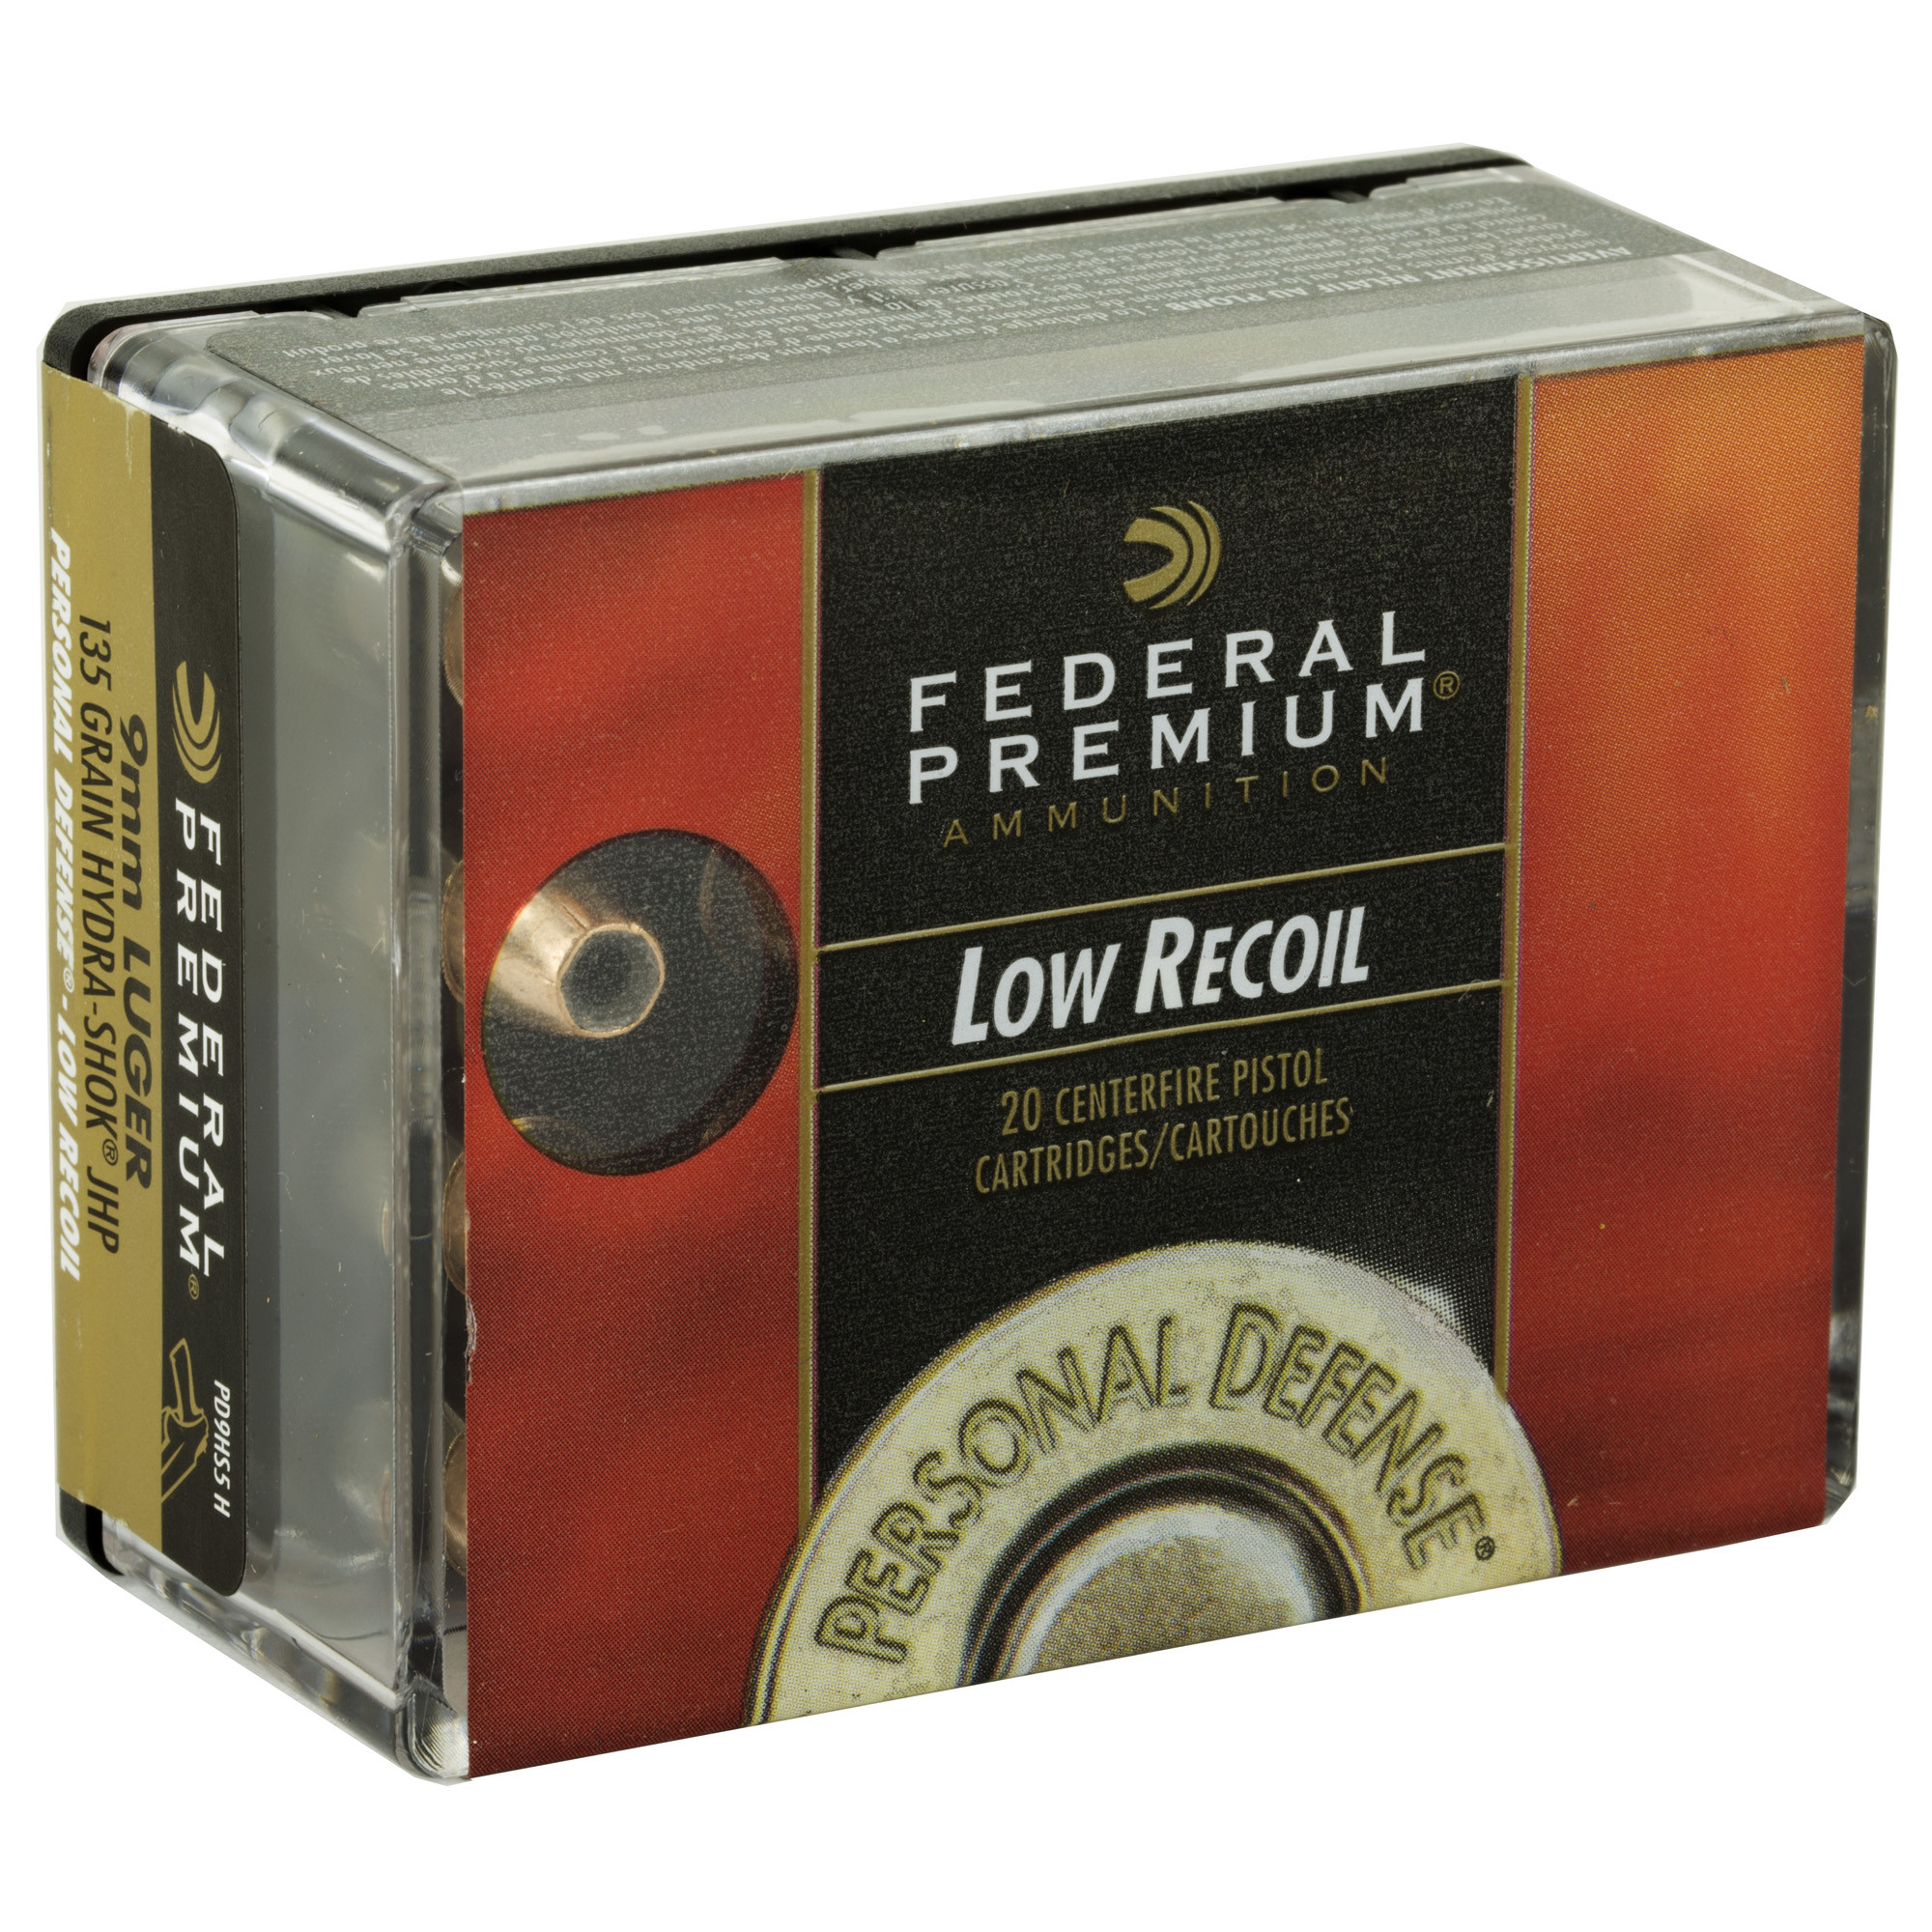 Federal Premium Personal Defense Ammunition 9mm Luger 135 Grain Hydra-Shok Low Recoil Jacketed Hollow Point Per 20